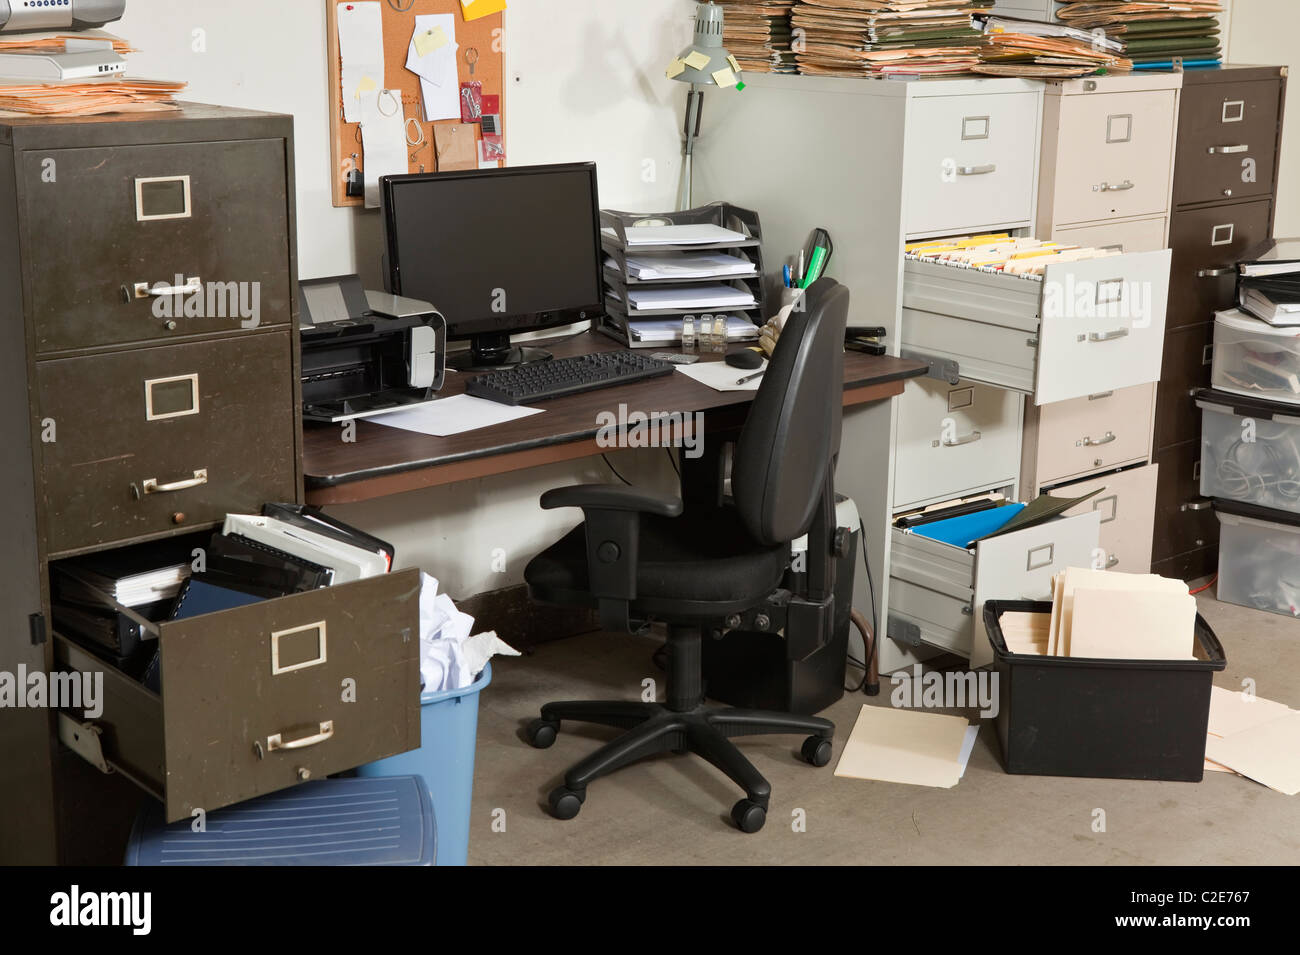 Very messy office with piles of files. - Stock Image